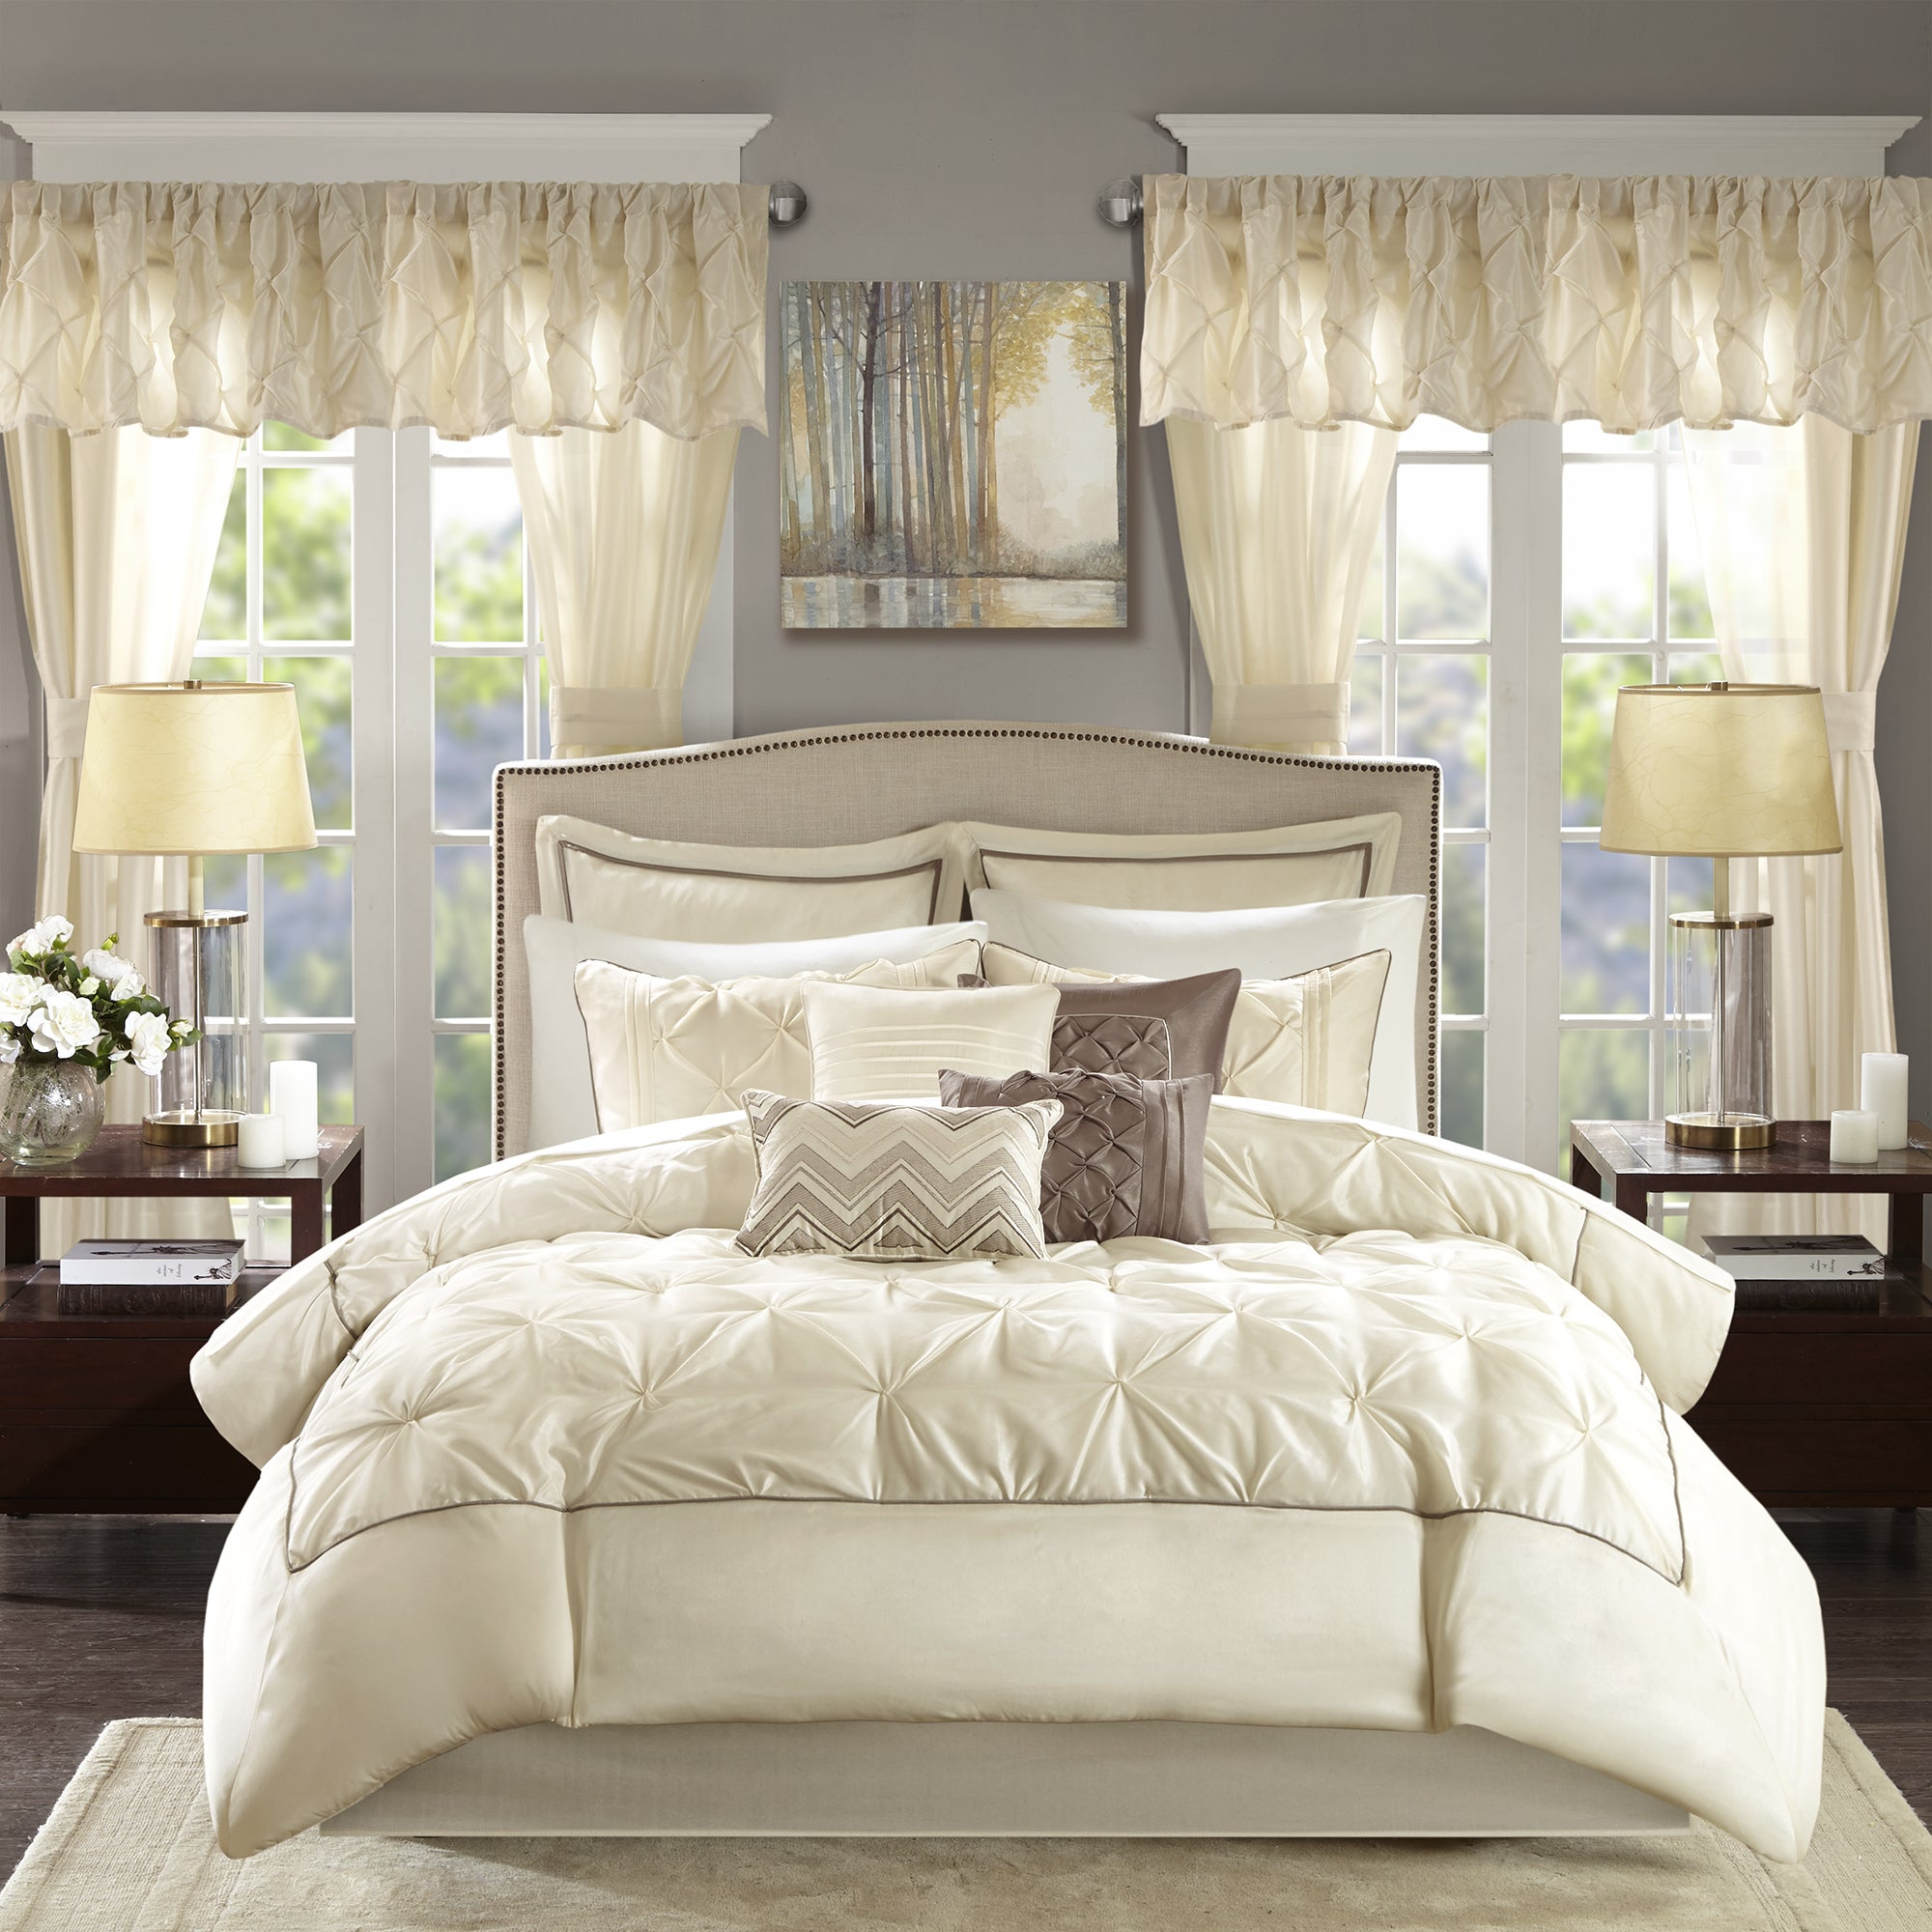 set overstock shipping panels taupe in today essentials product mushroom bag included bedding madison and window loretta piece a bath room free with park sheet